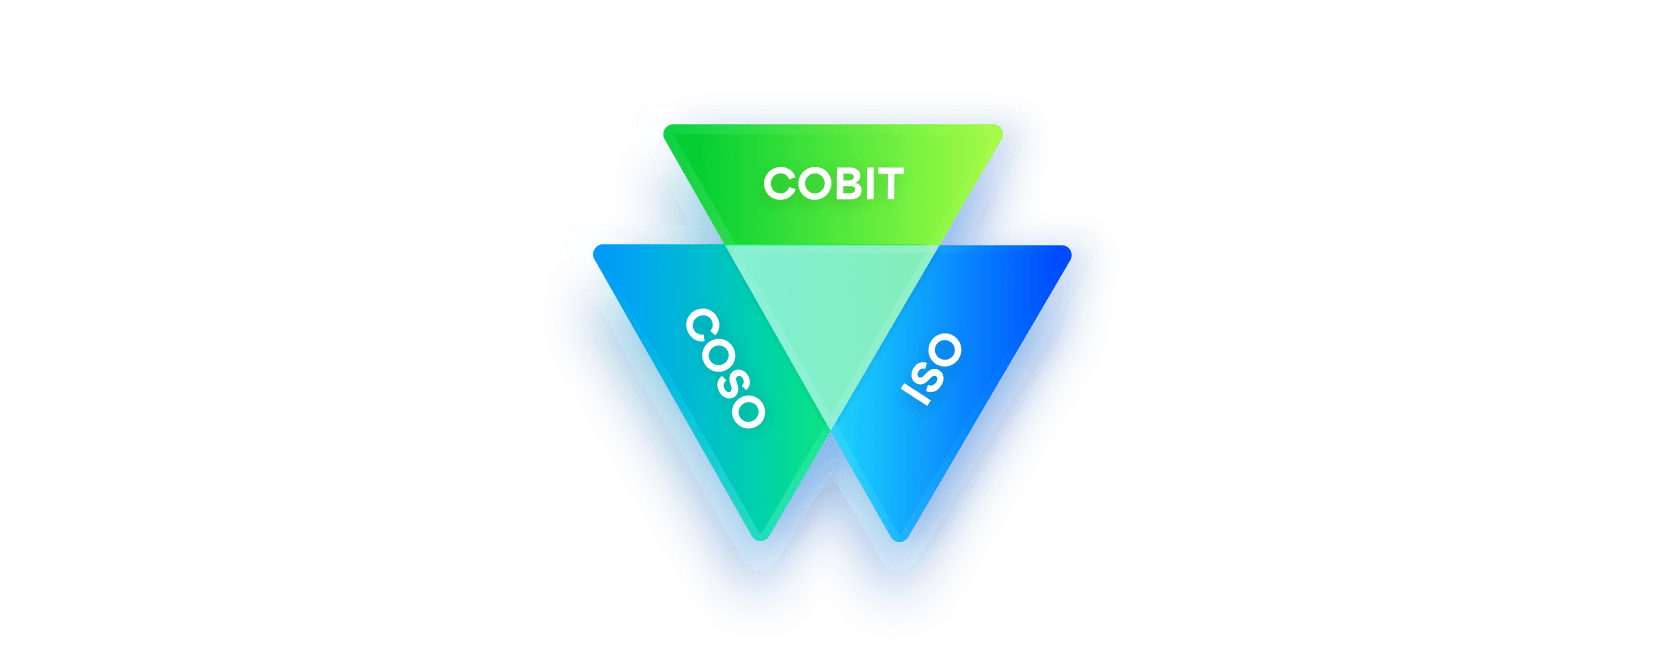 Auditing with COSO, COBIT, and ISO Control Frameworks